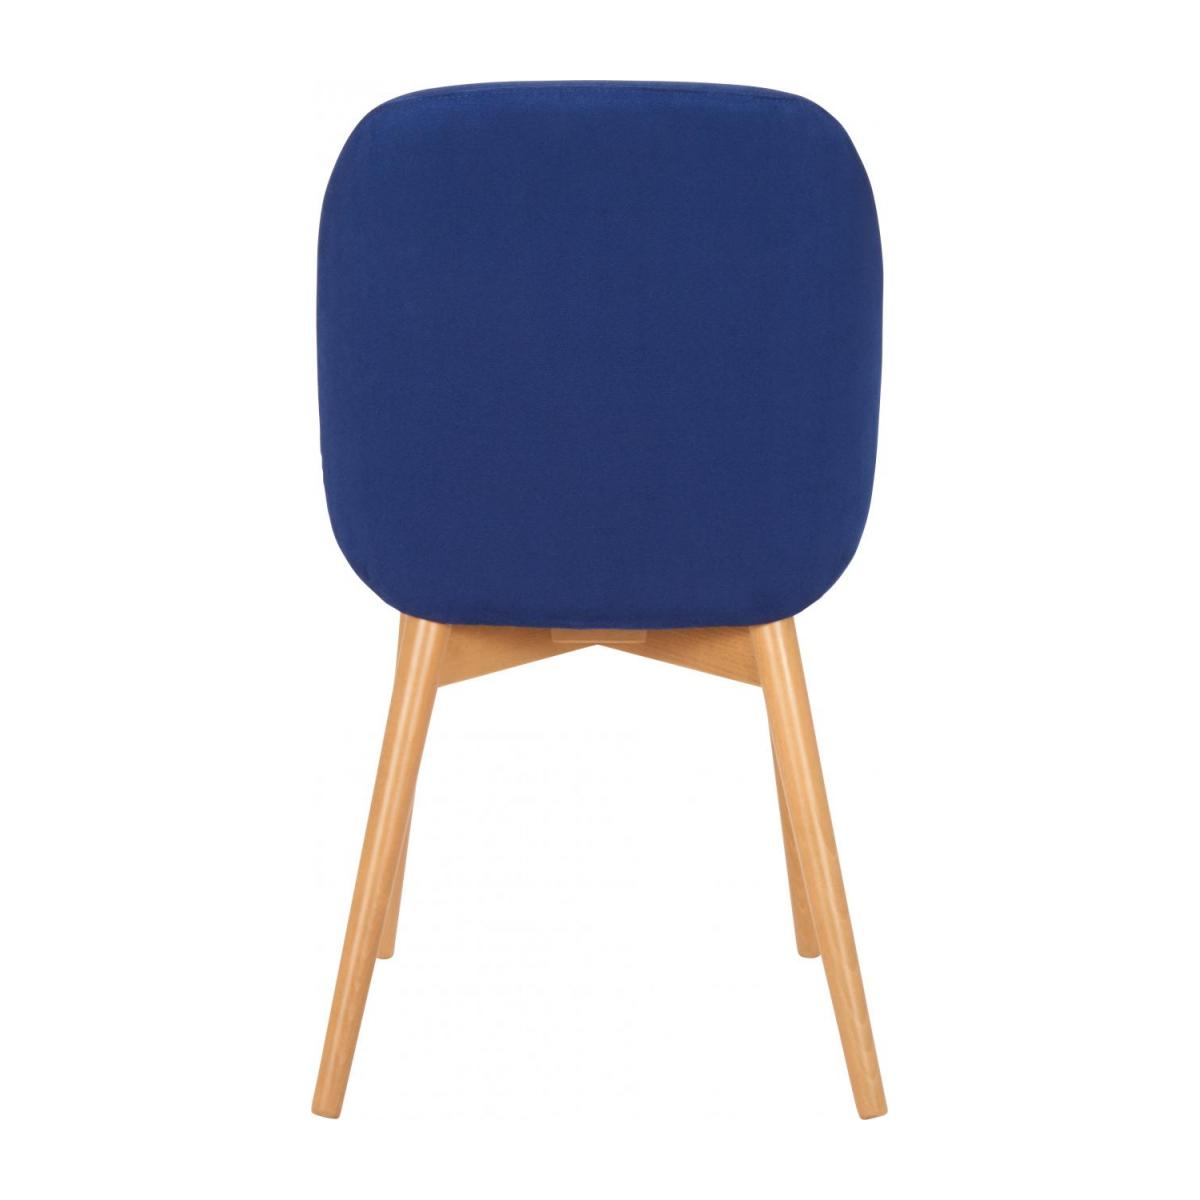 Chair with blue fabric cover and beech wood legs n°3